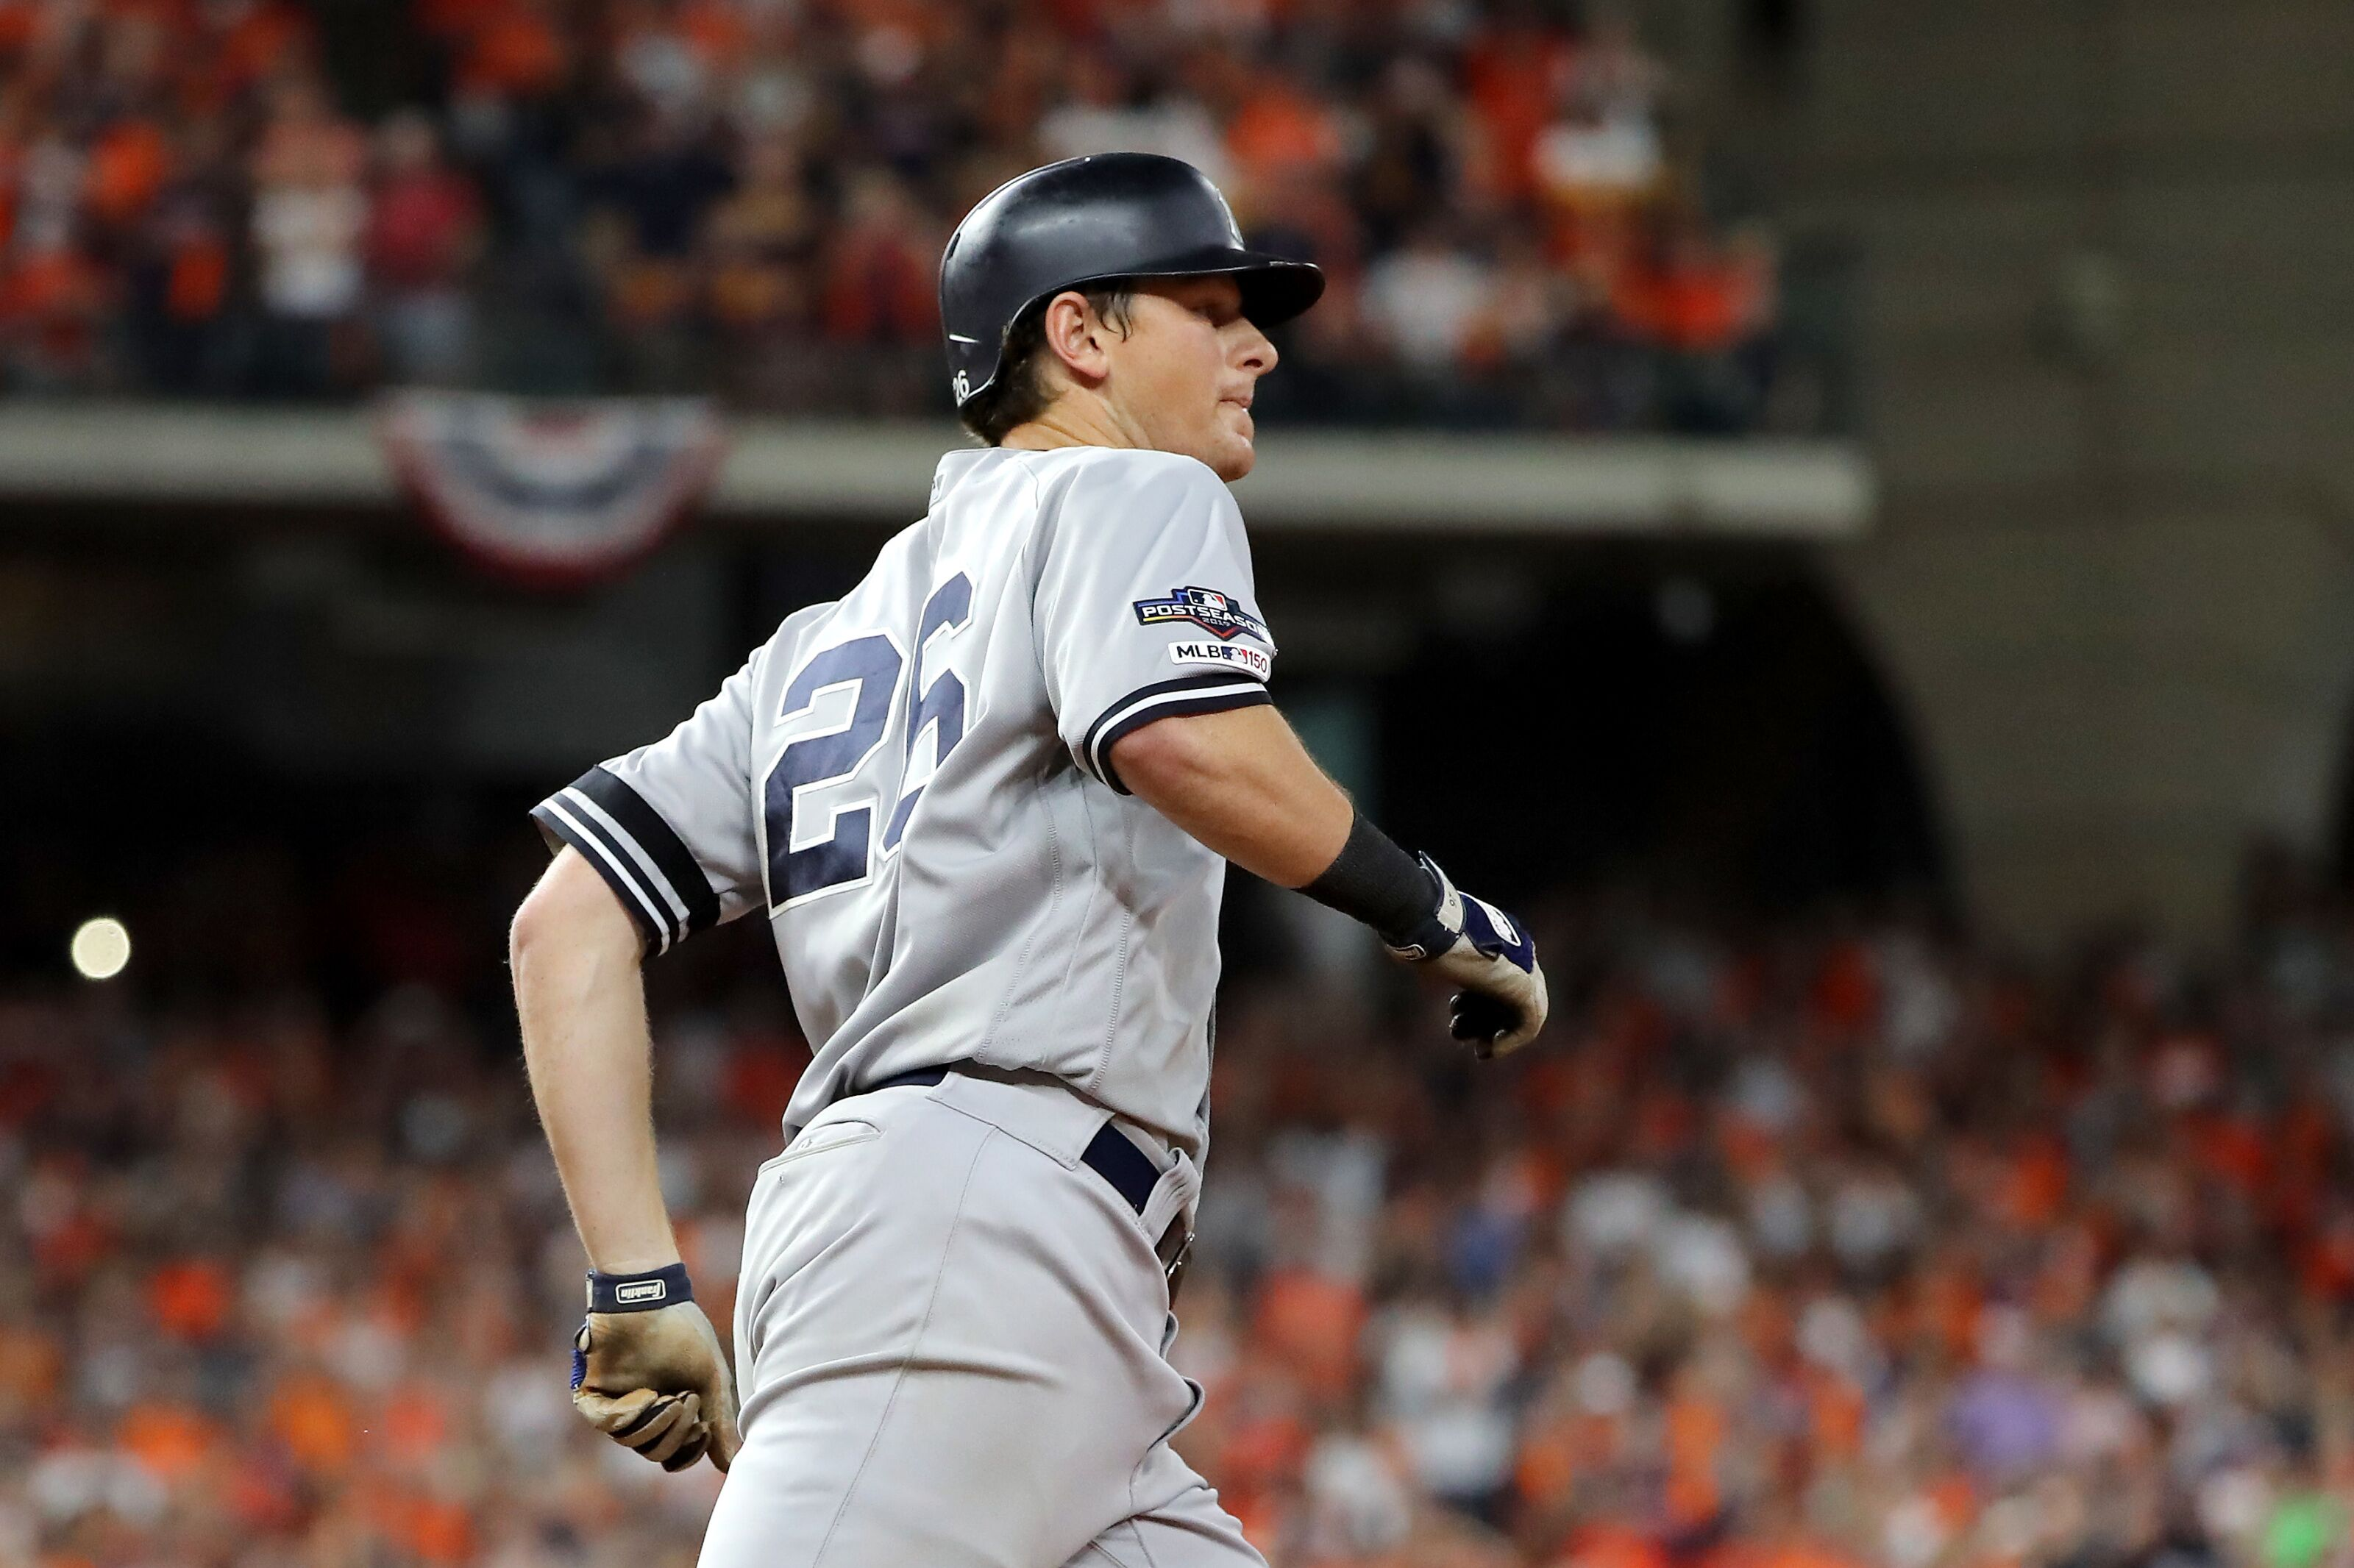 Yankees: We'll never forget DJ LeMahieu's first season in pinstripes